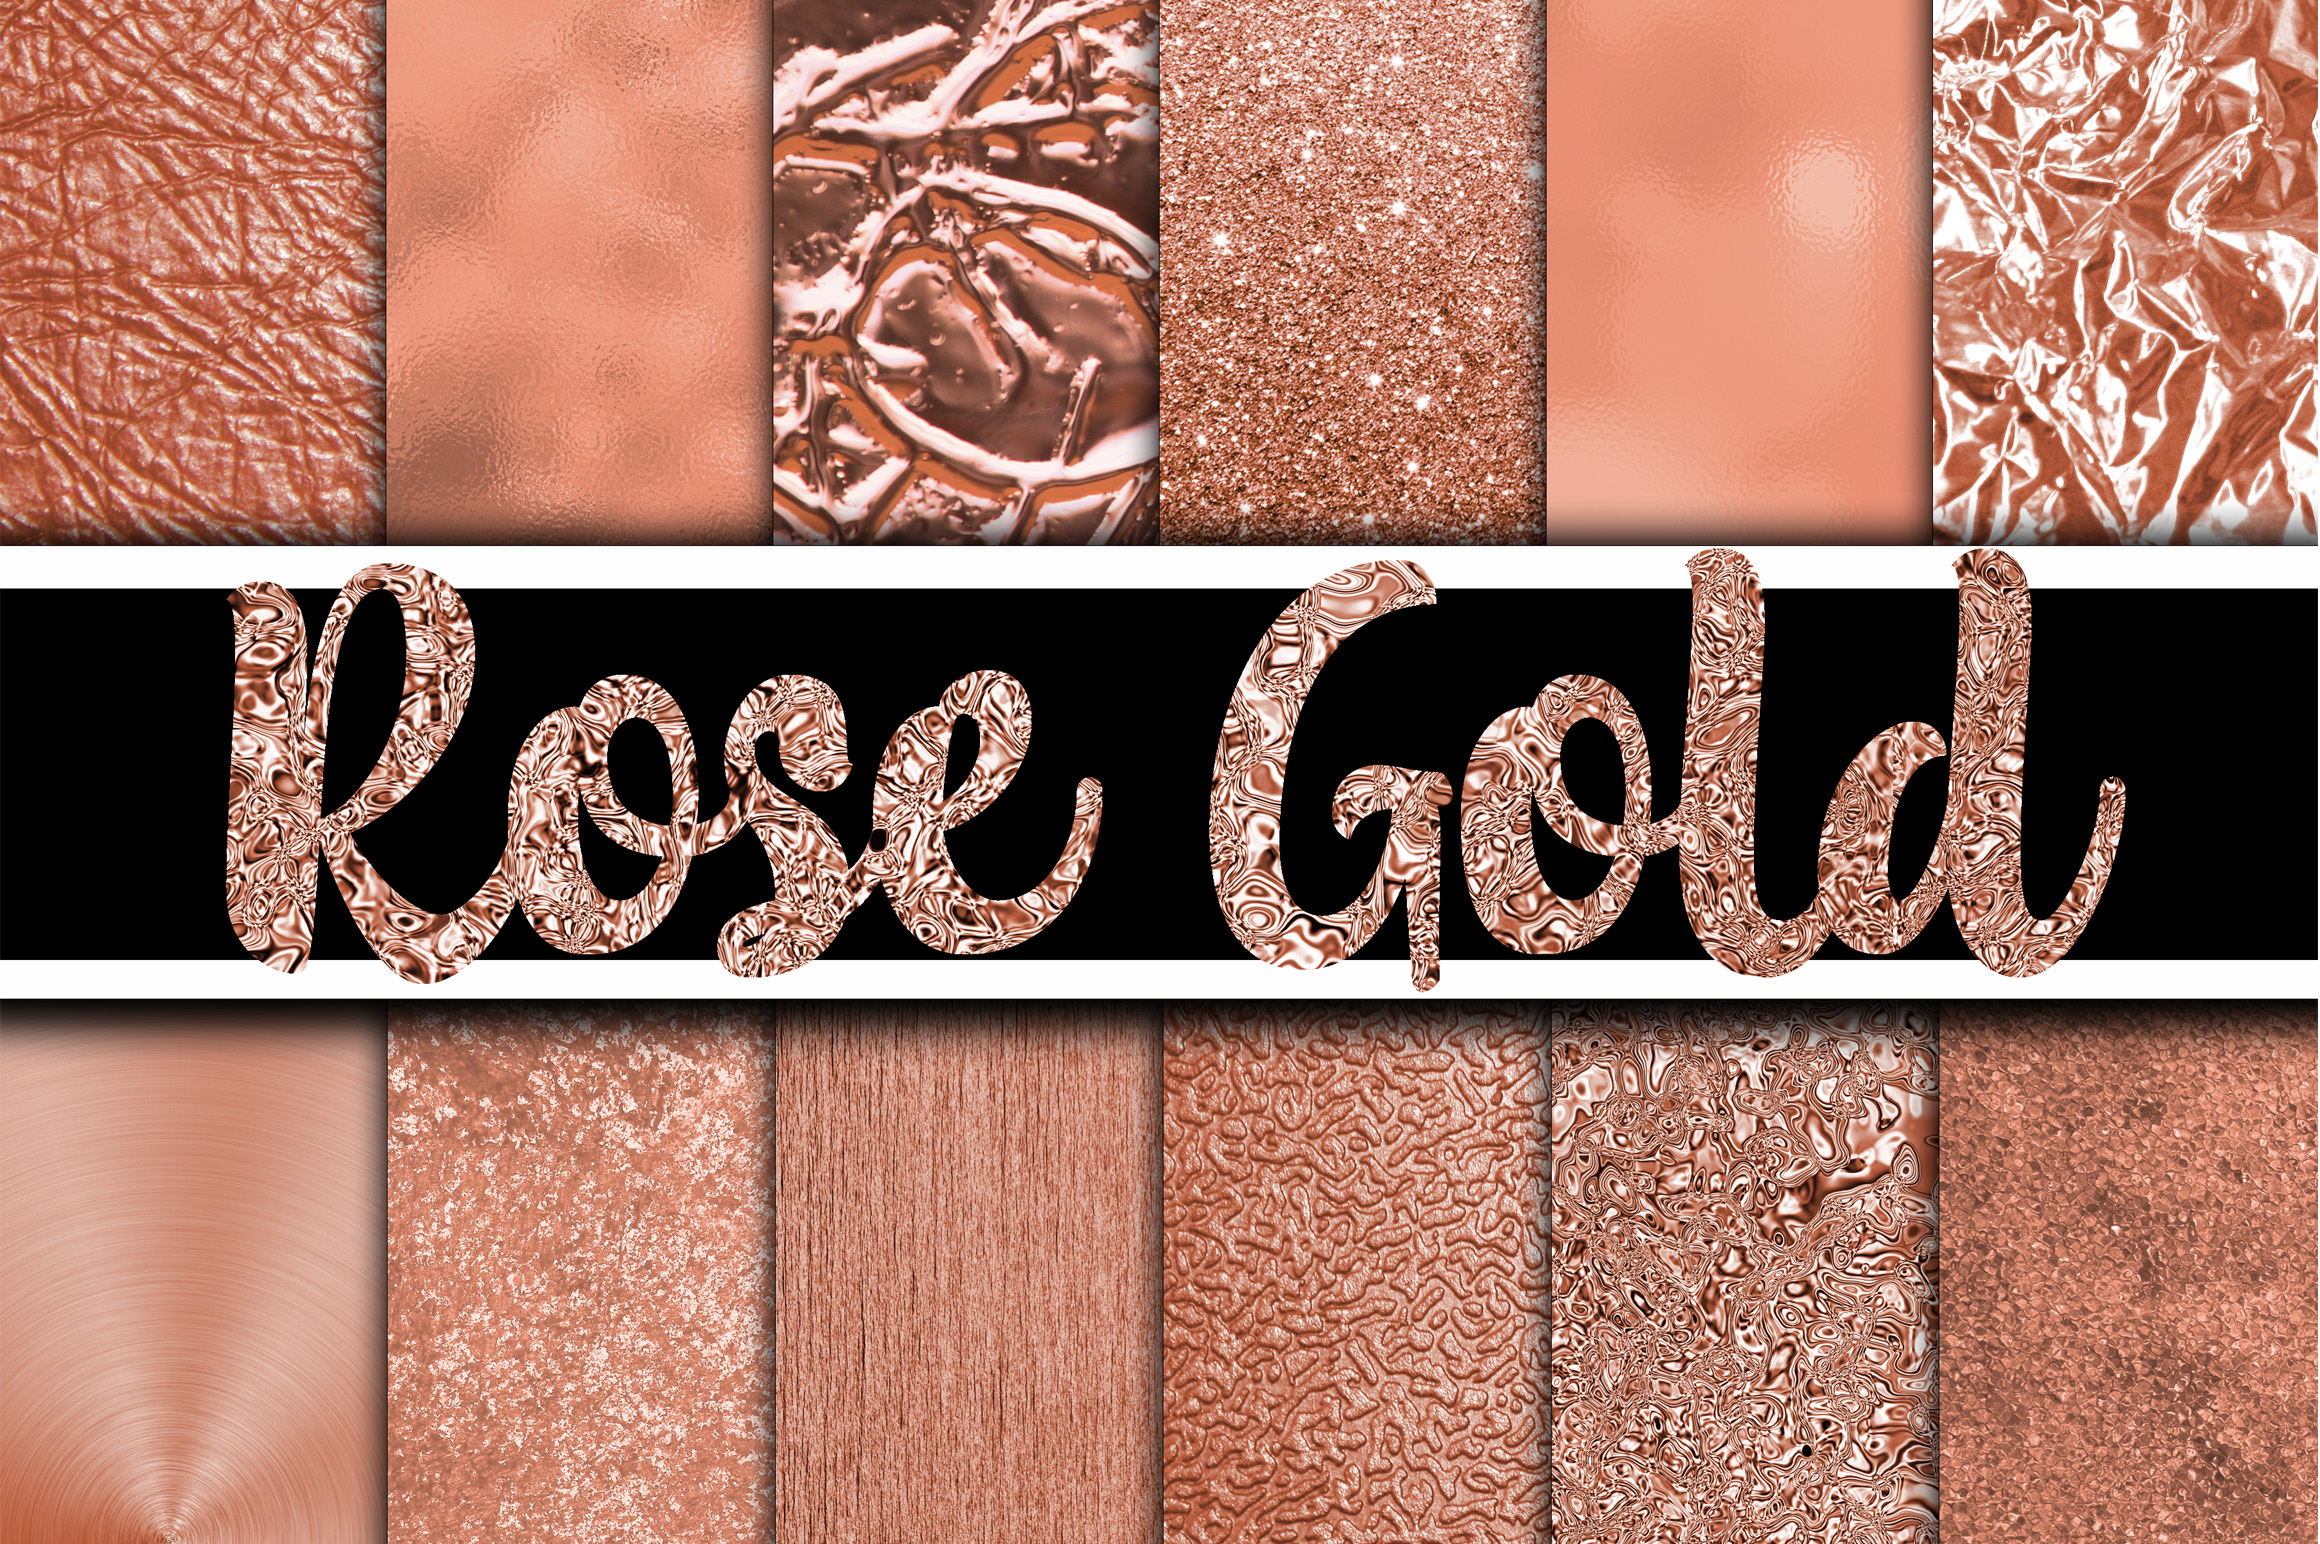 Rose Gold - Gold Digital Paper Textures Graphic Backgrounds By oldmarketdesigns